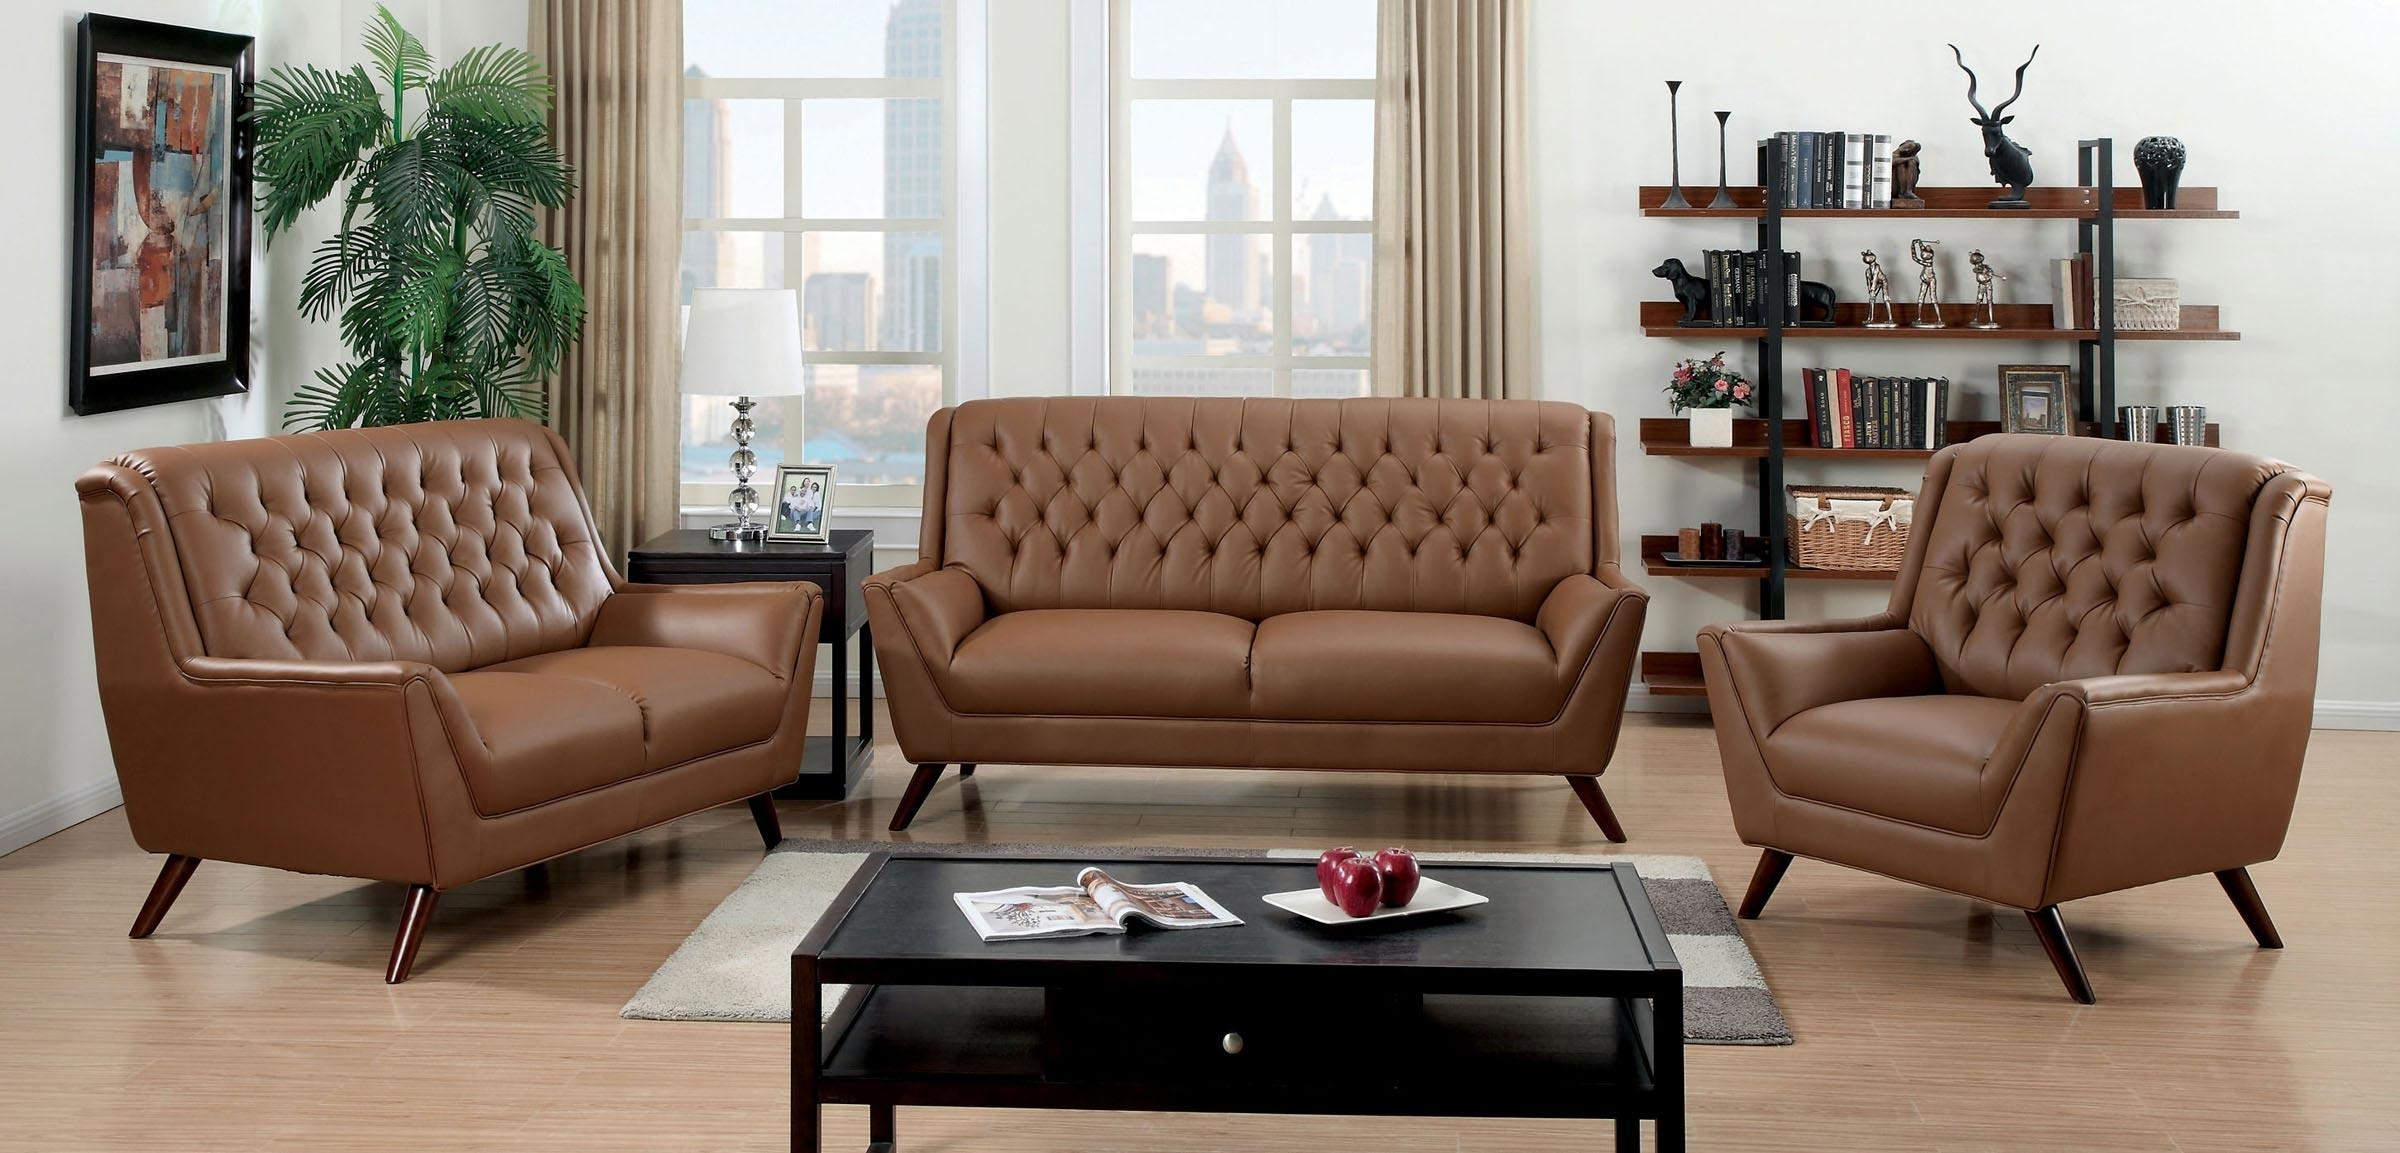 Furniture Home: Italian Navy Leather Tufted Sofa Second Hand With Brown Tufted Sofas (View 13 of 20)